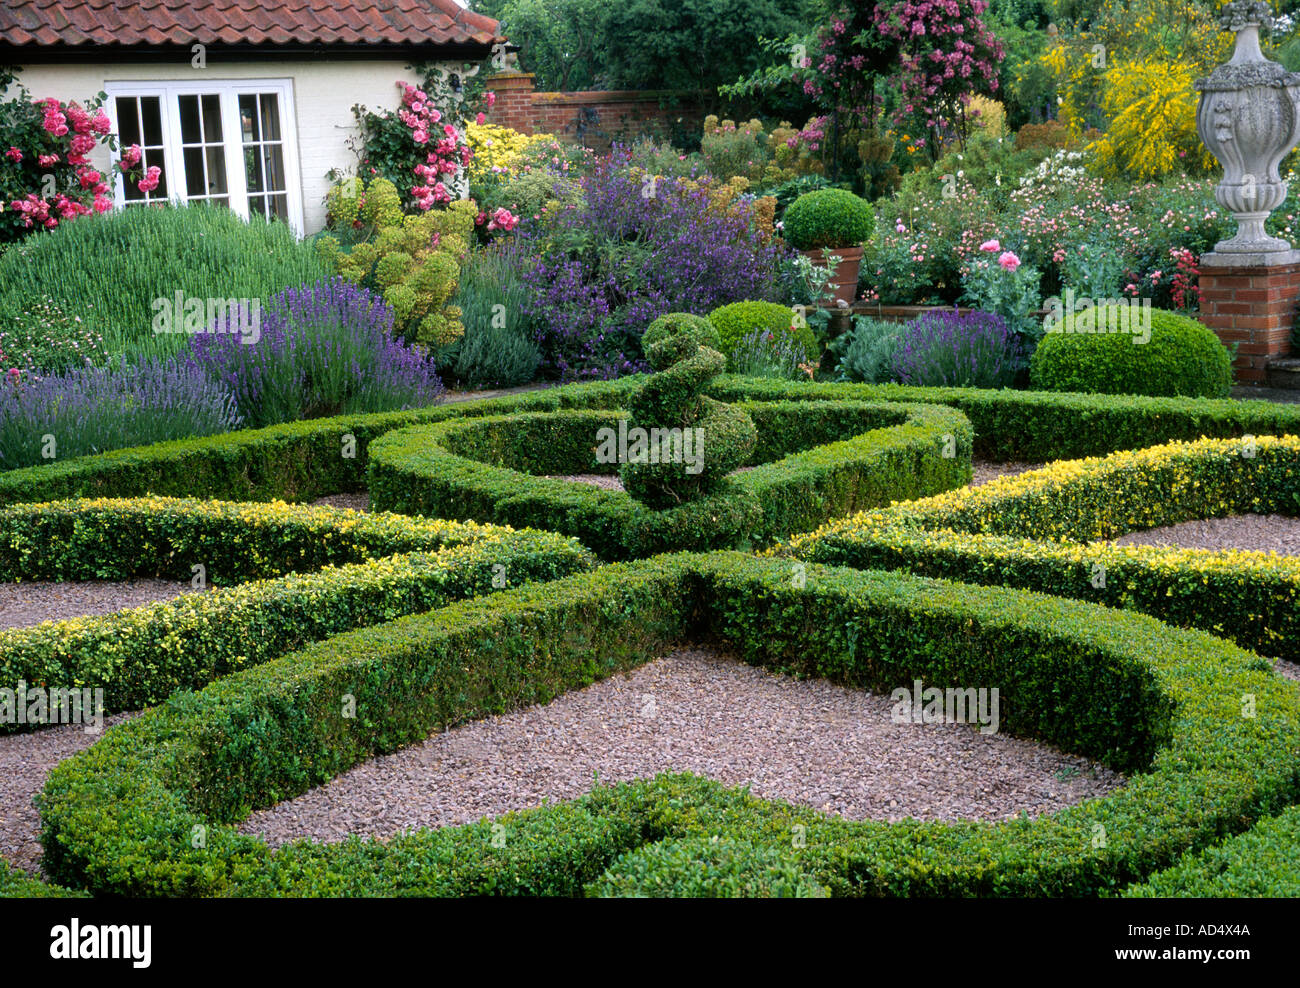 Garden Design Norfolk Kettle Hill Box Hedges Norfolk England English Garden Design .